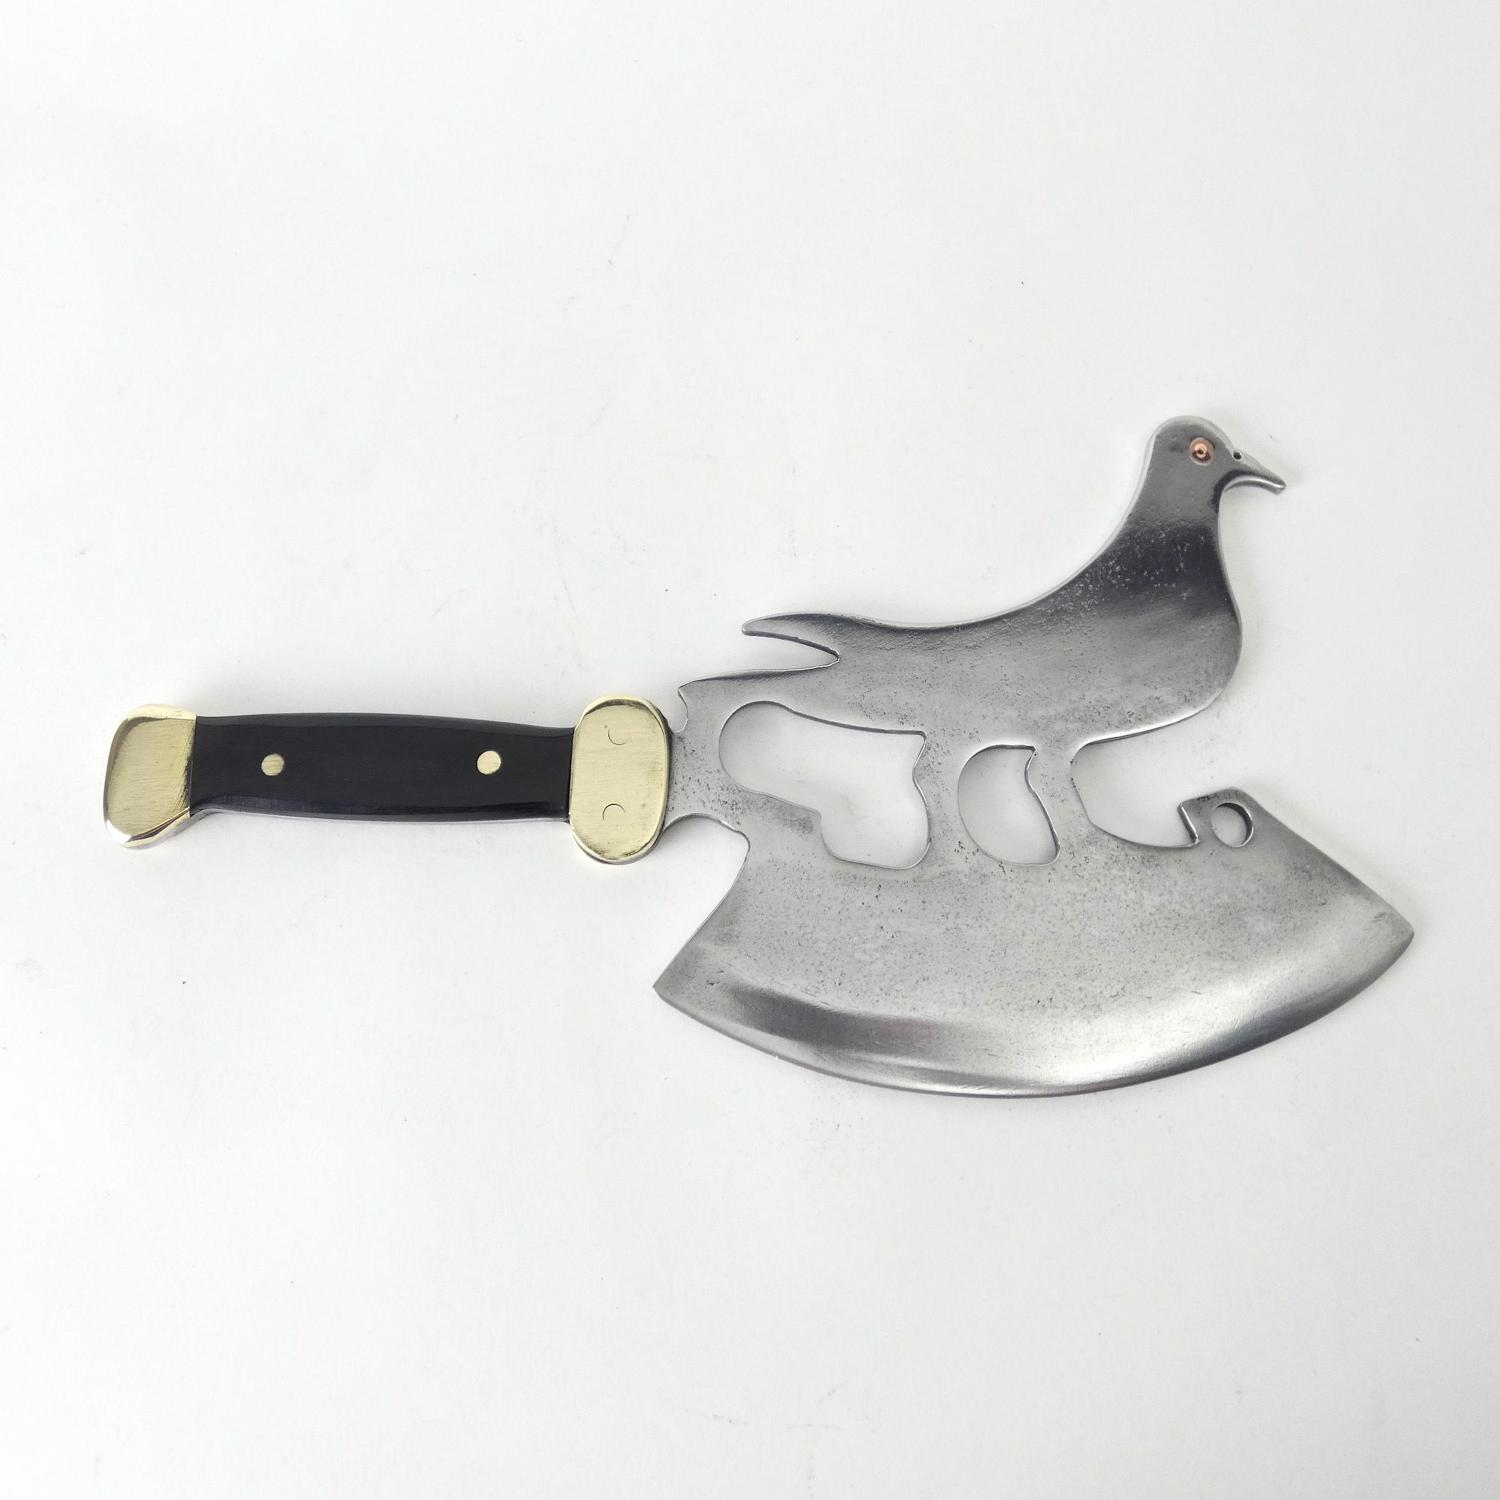 Bird shaped ice cleaver